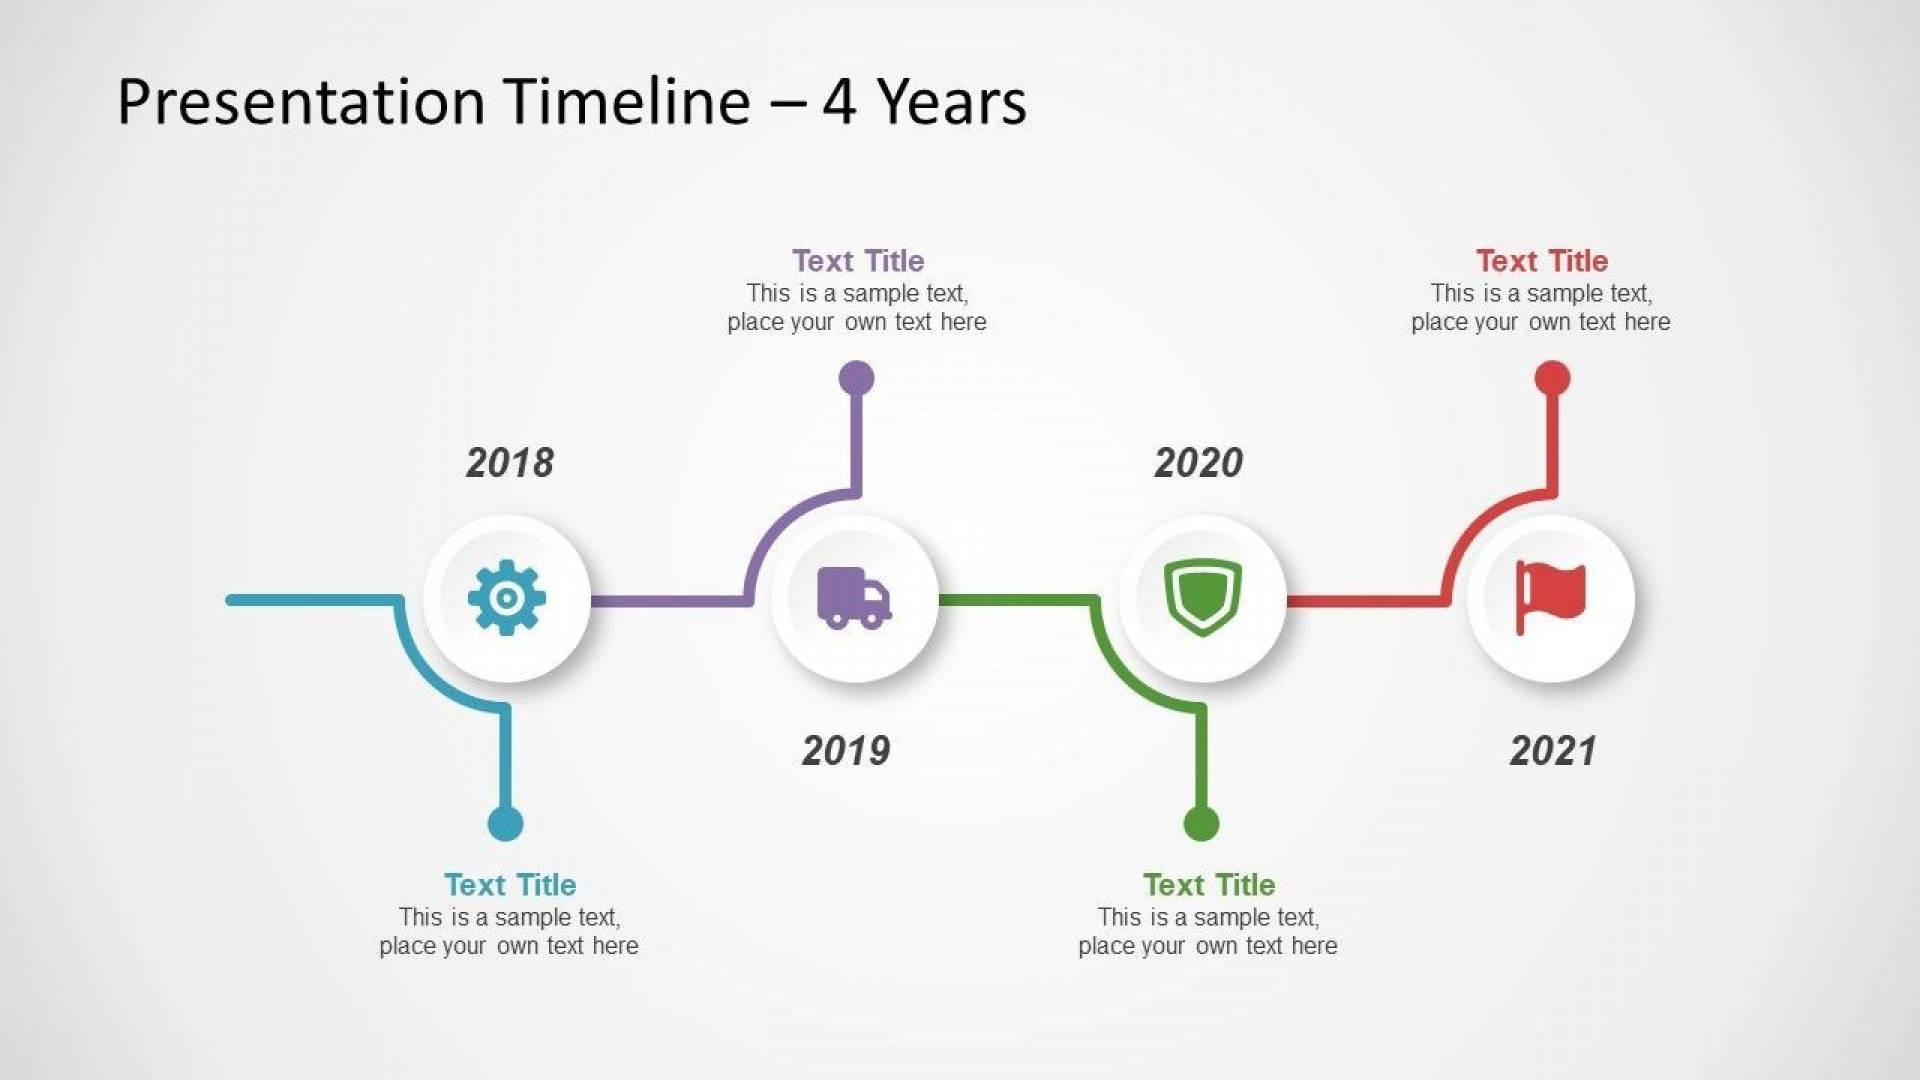 002 Unique Timeline Template For Ppt Free Concept  Infographic Vertical Download1920